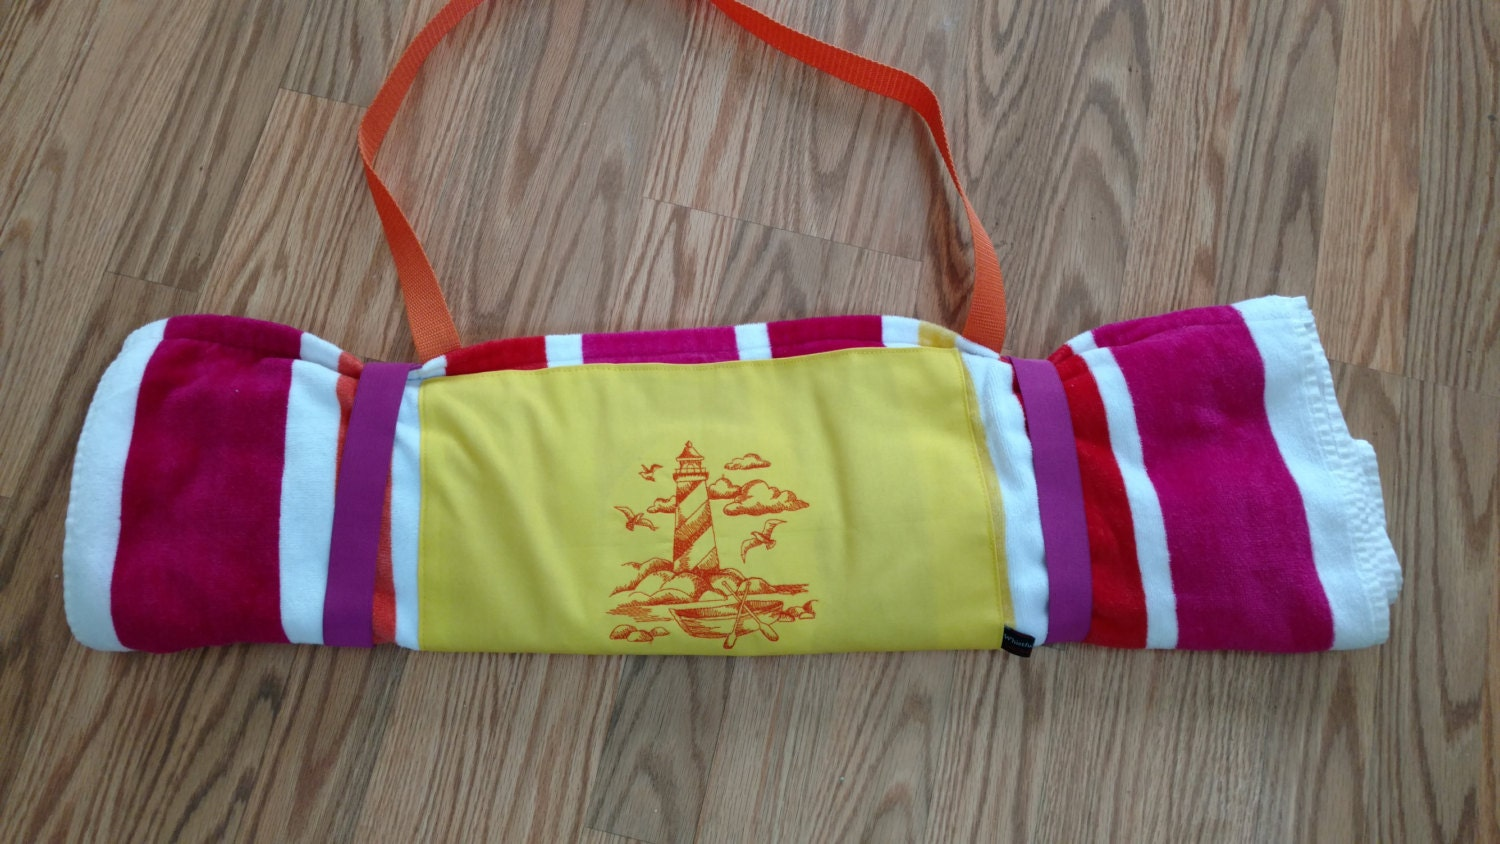 Embroidered Beach Towel Roll-Up by WhistfulWhimsy on Etsy